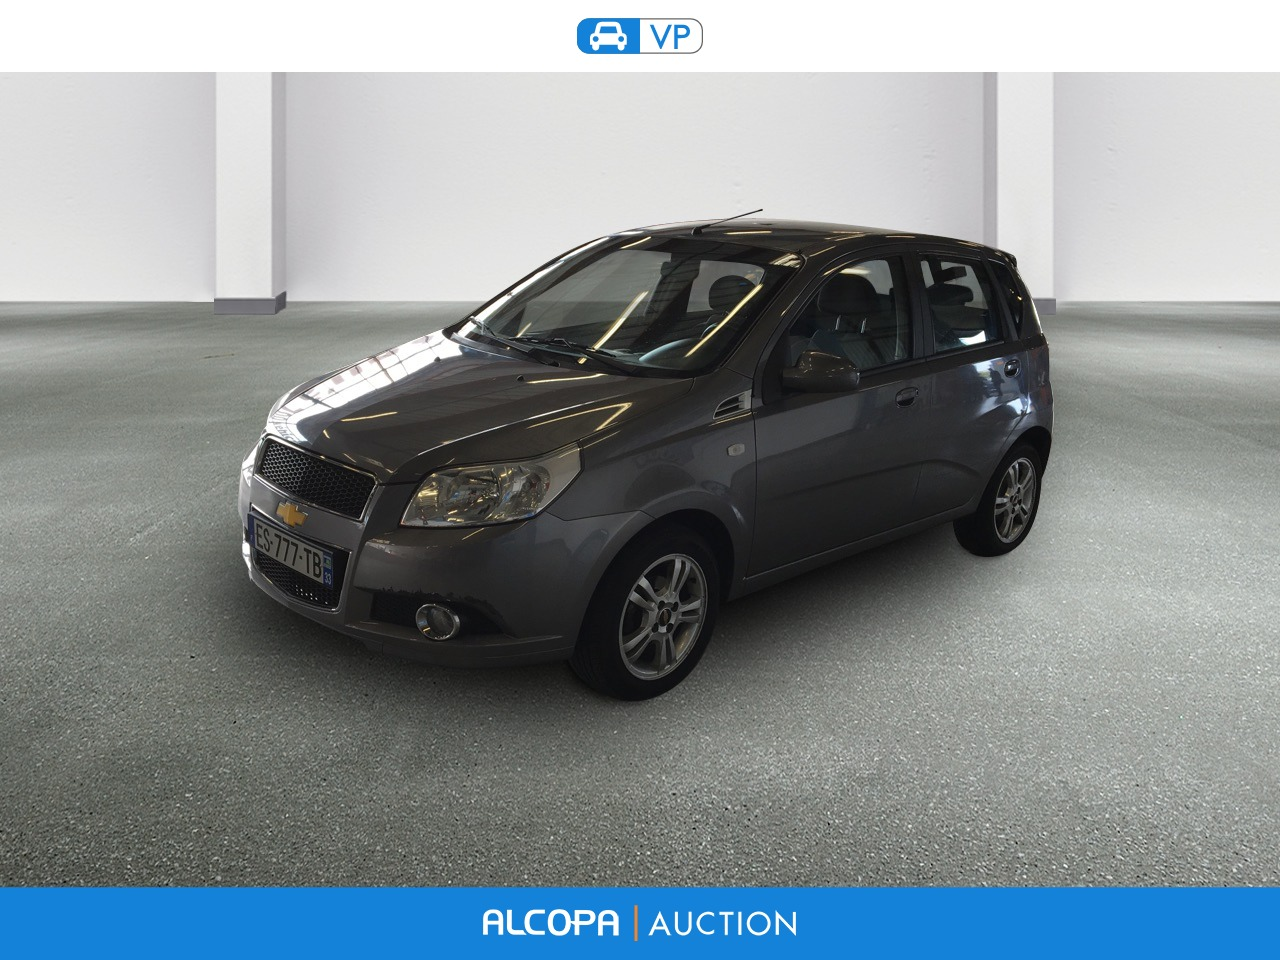 chevrolet aveo aveo 1 4 16v lt a alcopa auction. Black Bedroom Furniture Sets. Home Design Ideas